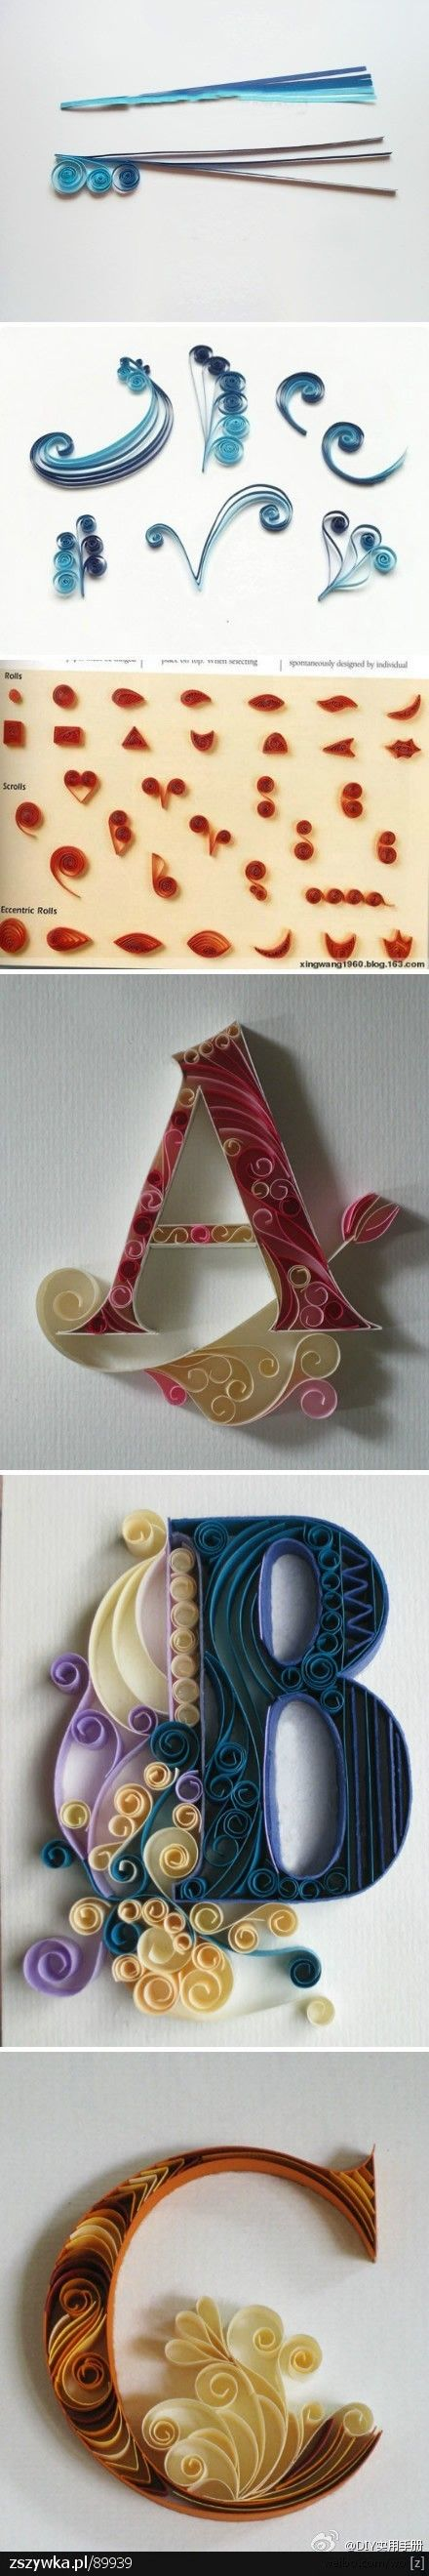 Paper Crafts Quilling Letters: looks cool but time-consuming. Winter project?